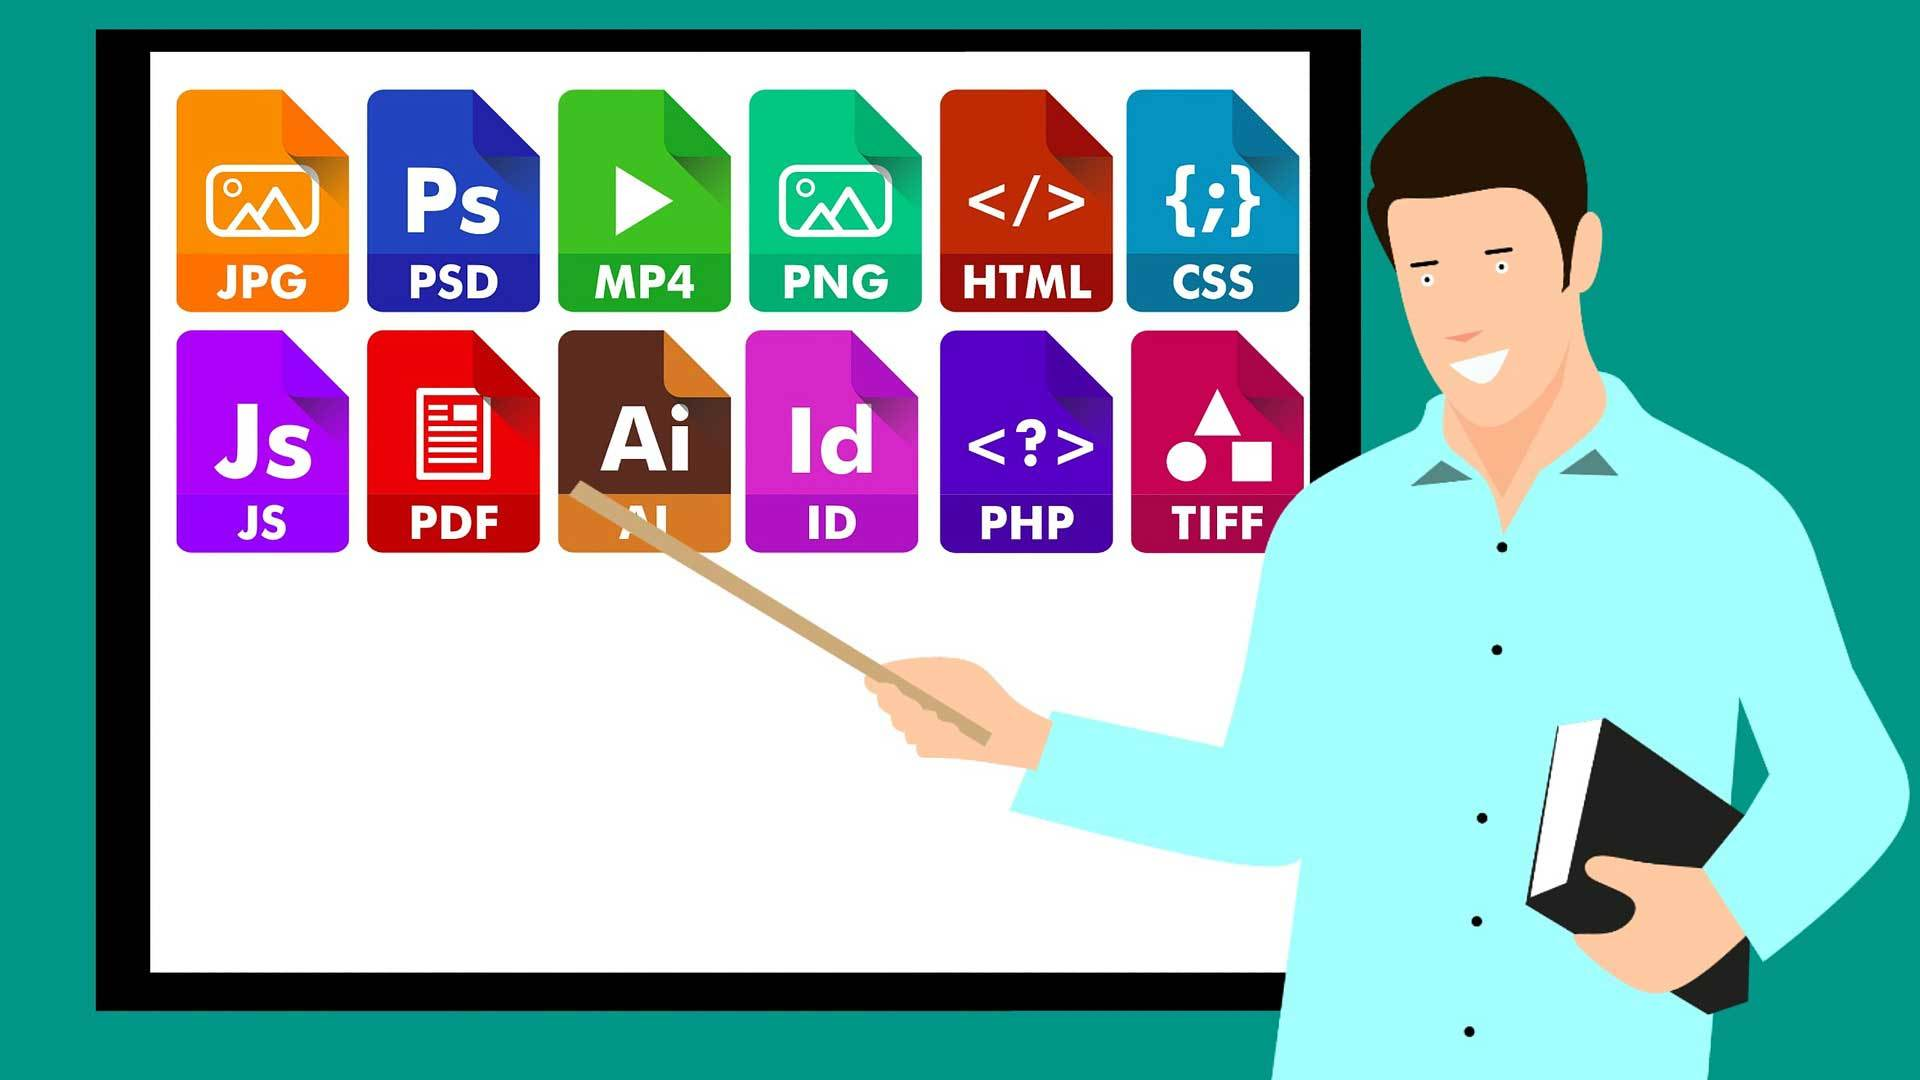 Advantages-of-Using-PDF-Format-with-Some-Drawbacks-on-99insight